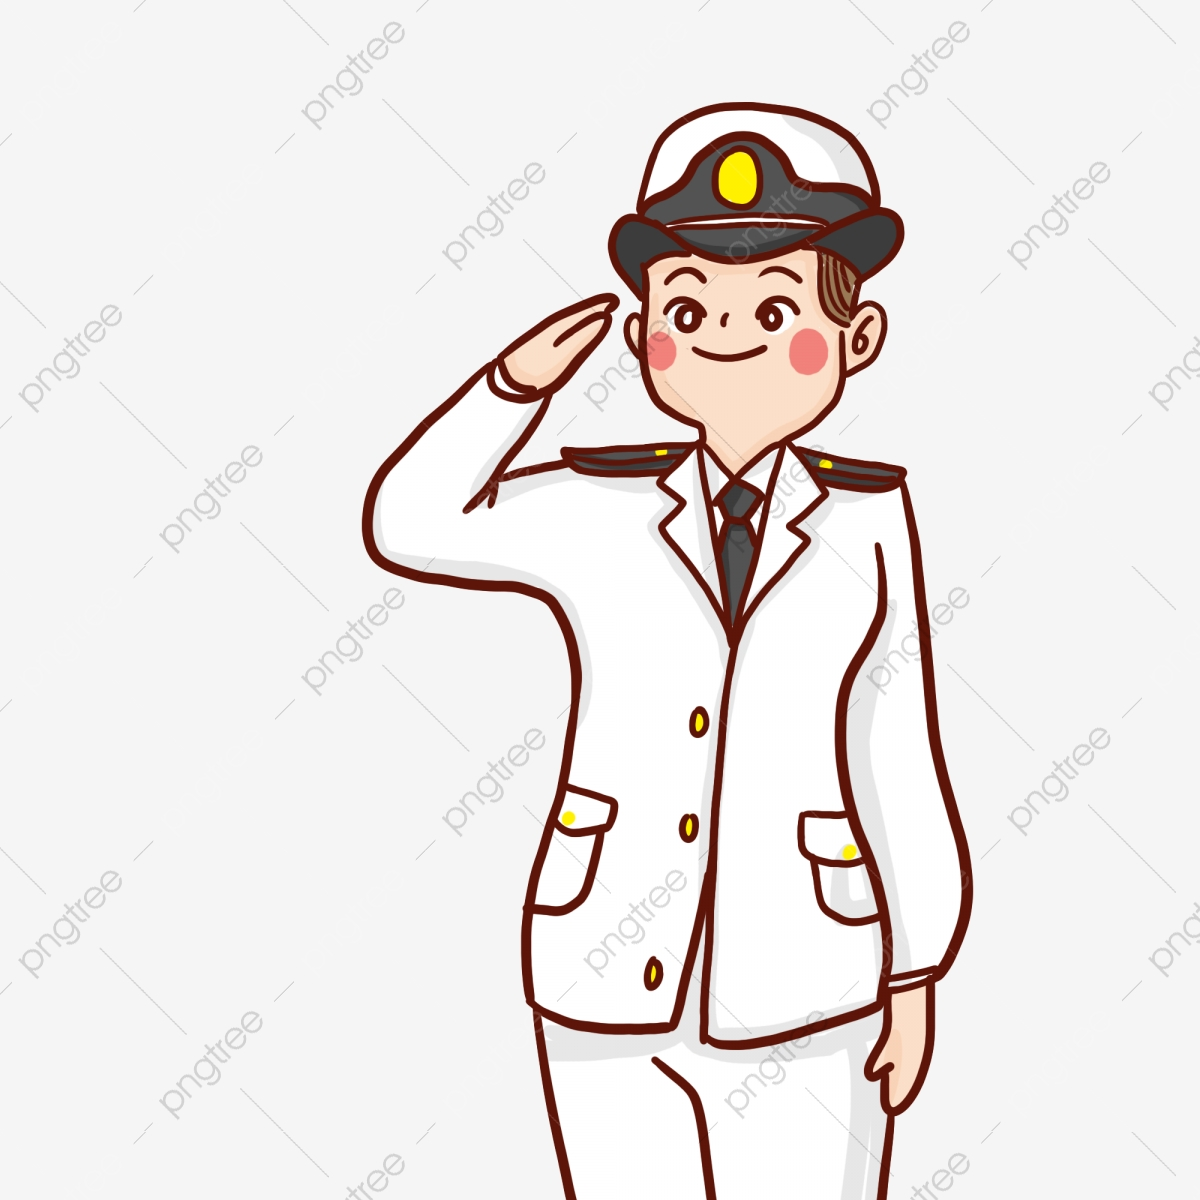 navy salute clipart - Clip Art Library